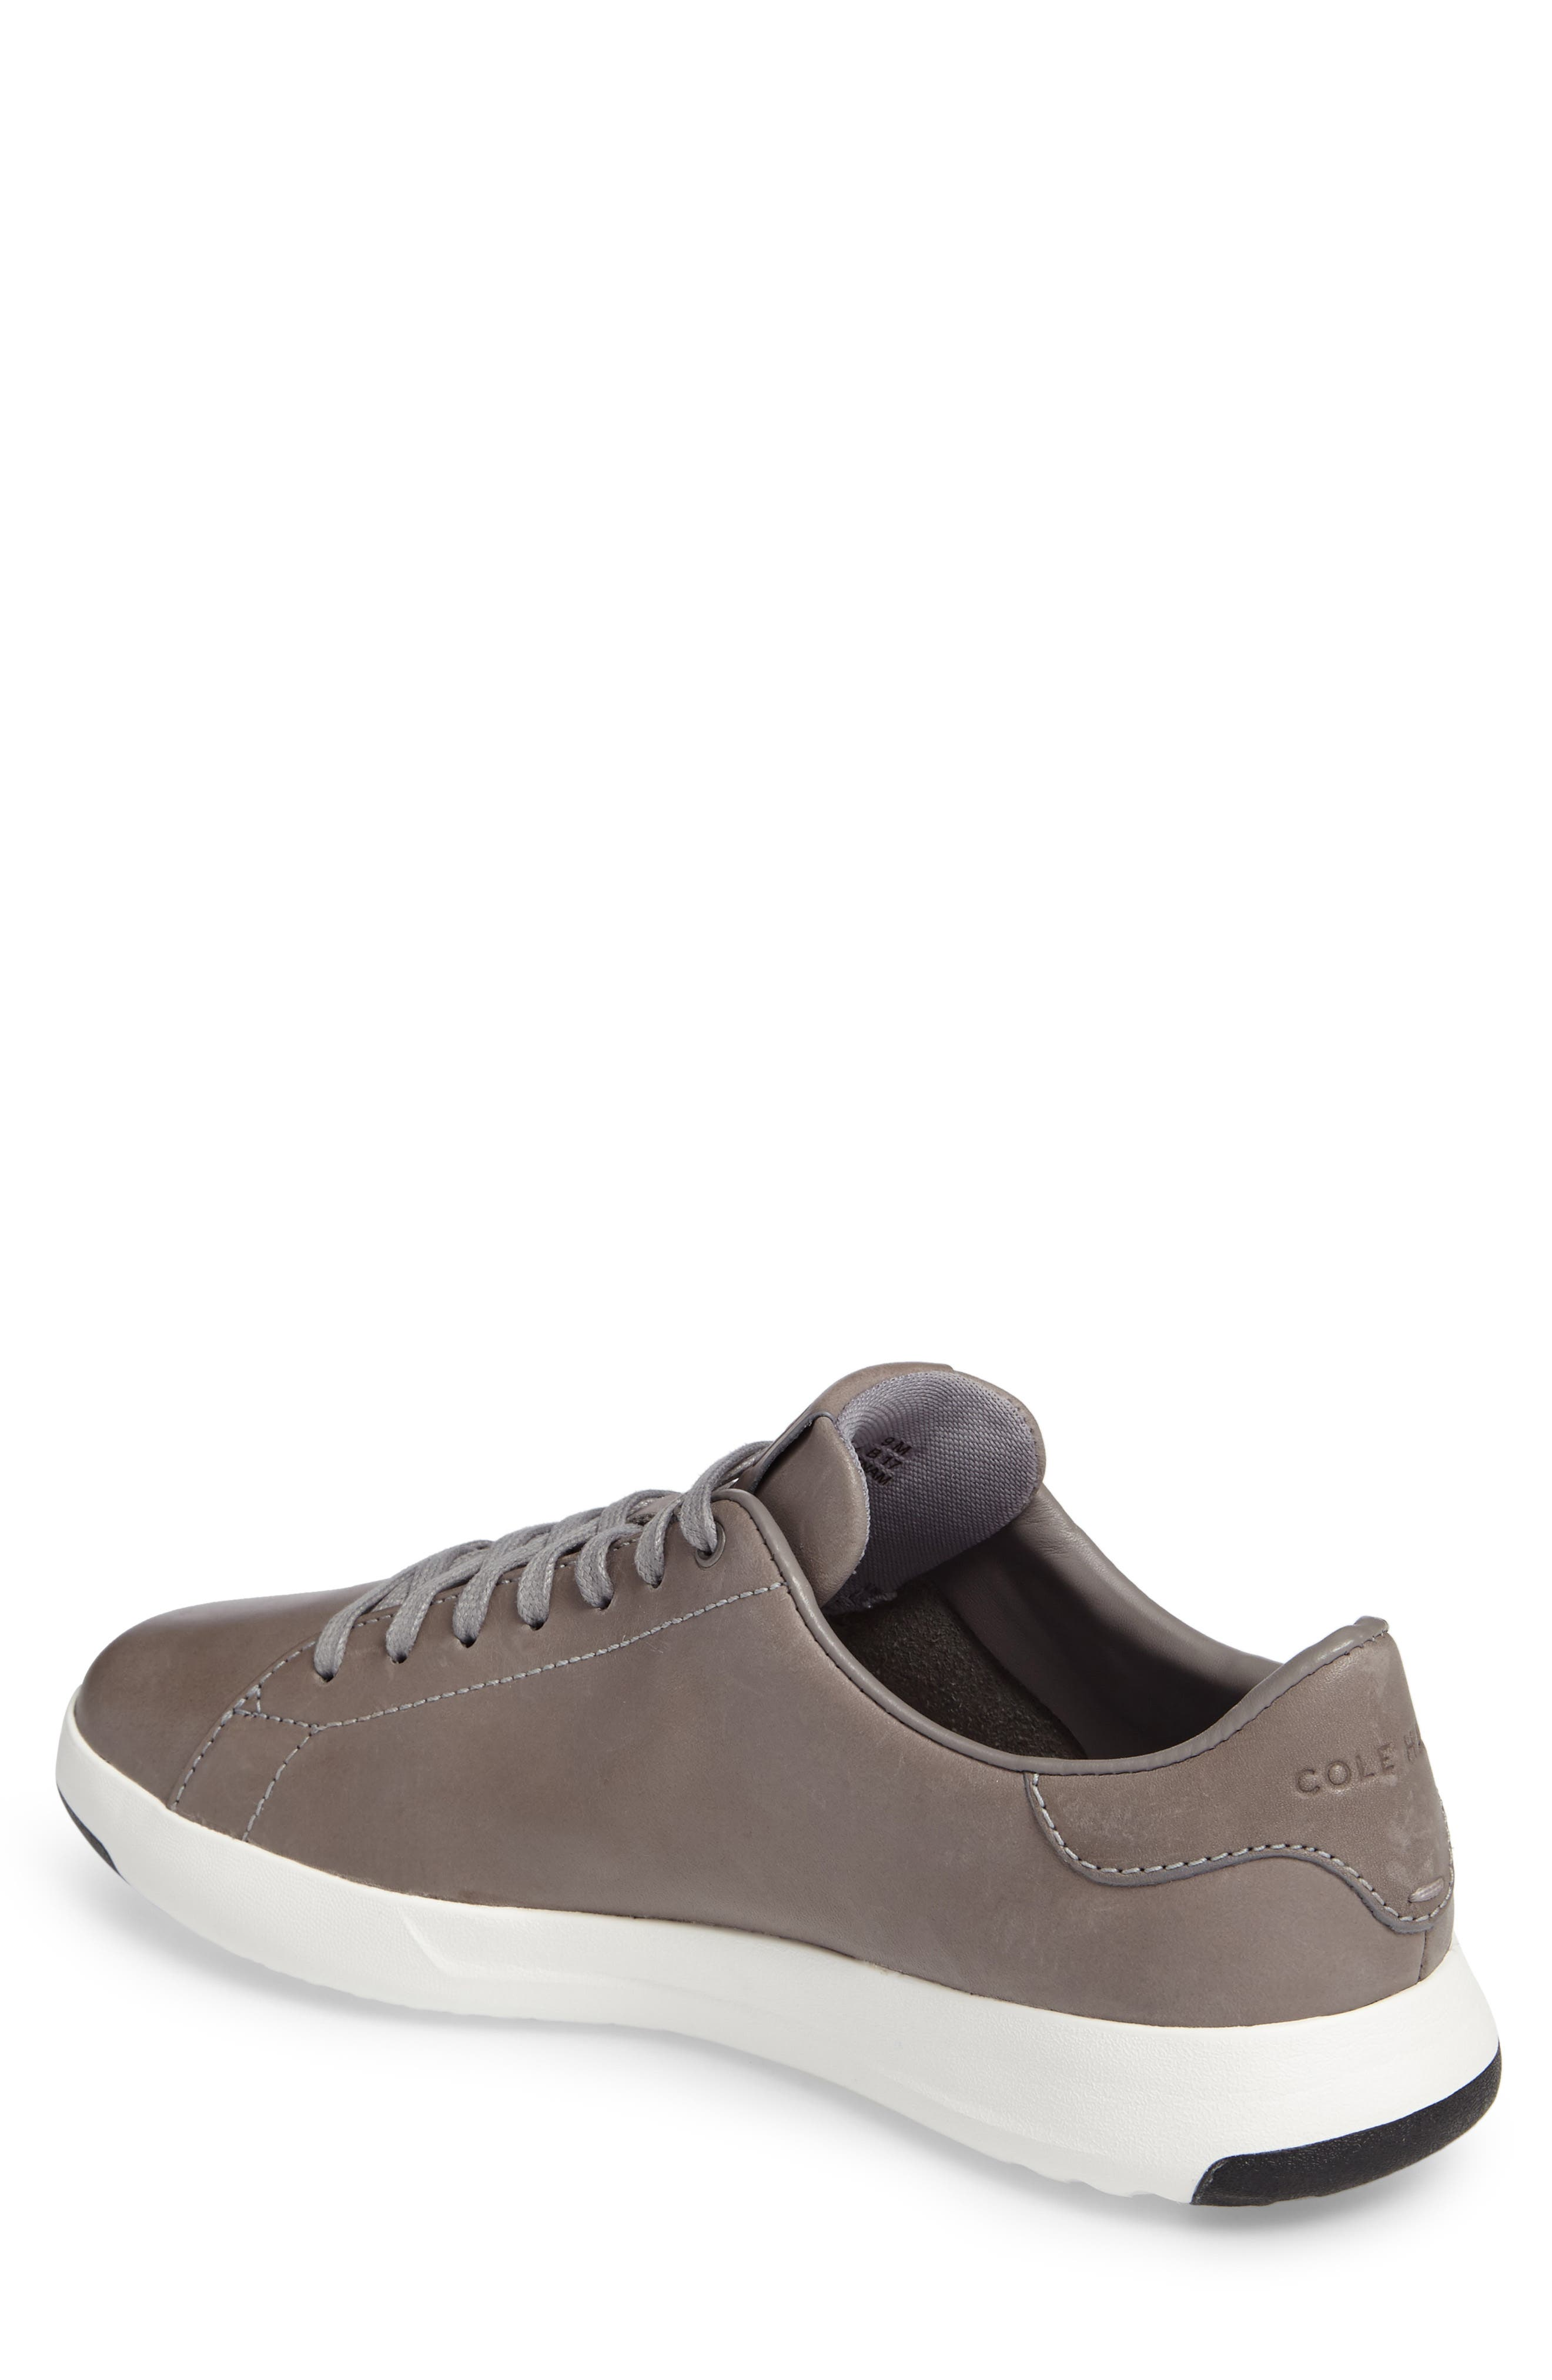 GrandPro Tennis Sneaker,                             Alternate thumbnail 2, color,                             IRONCLOUD LEATHER